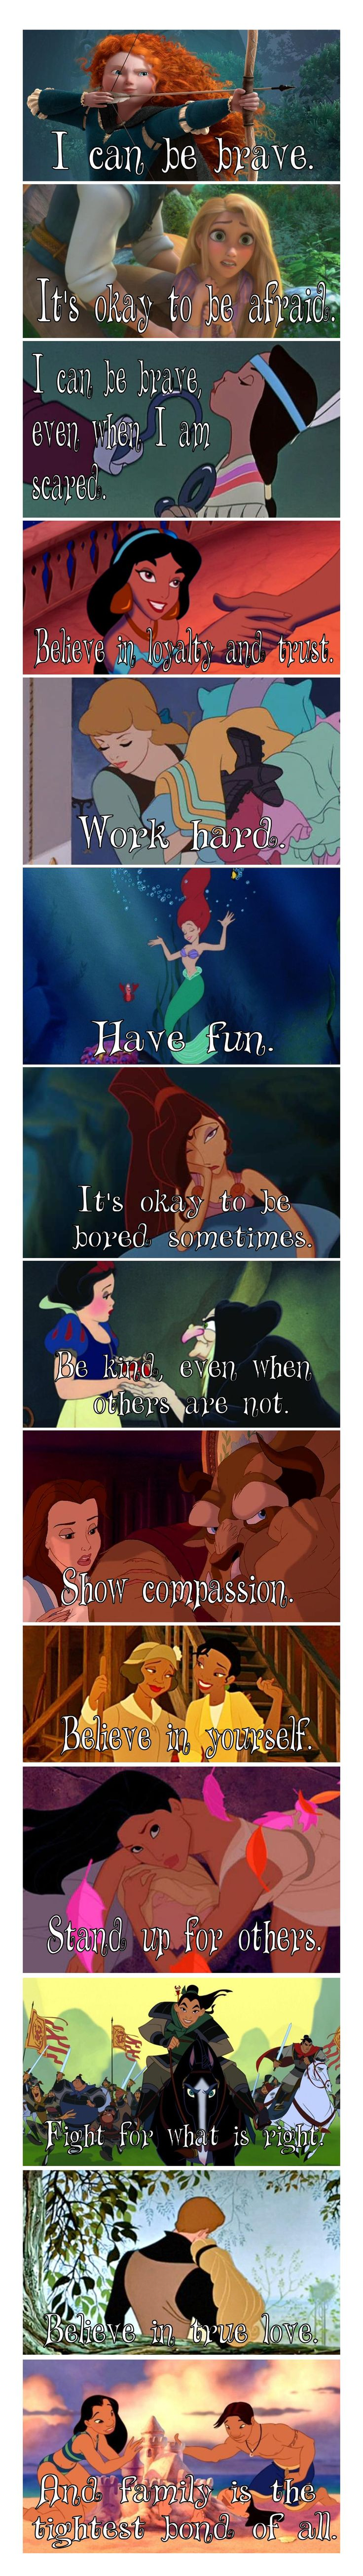 These are the Lessons I learned from Disney Cartoons LOL ! anyway awsome pic;)